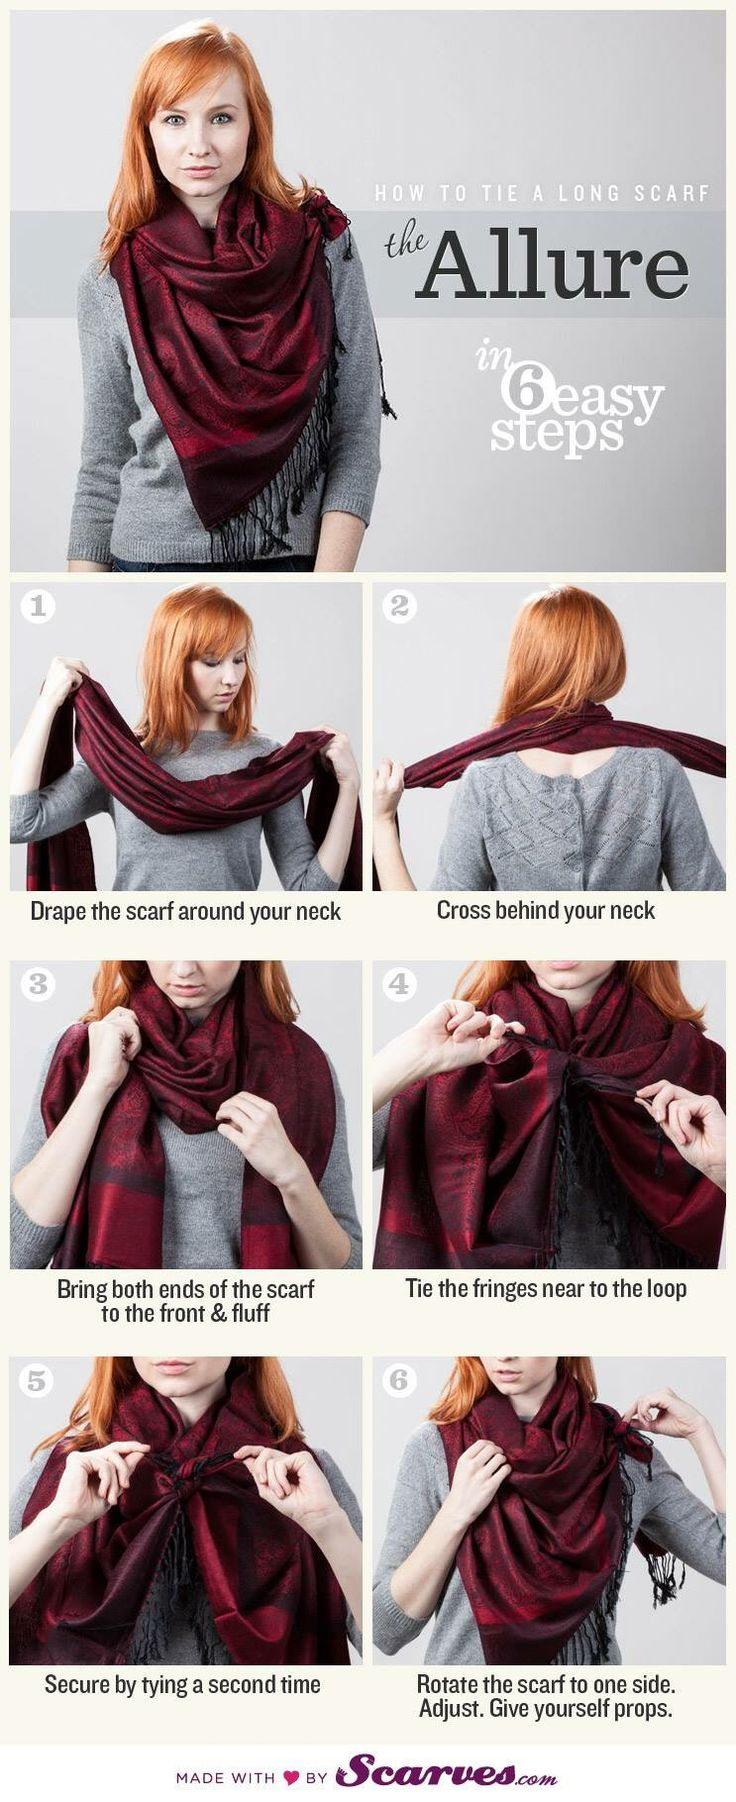 best scarves in fashion going backward in time images on